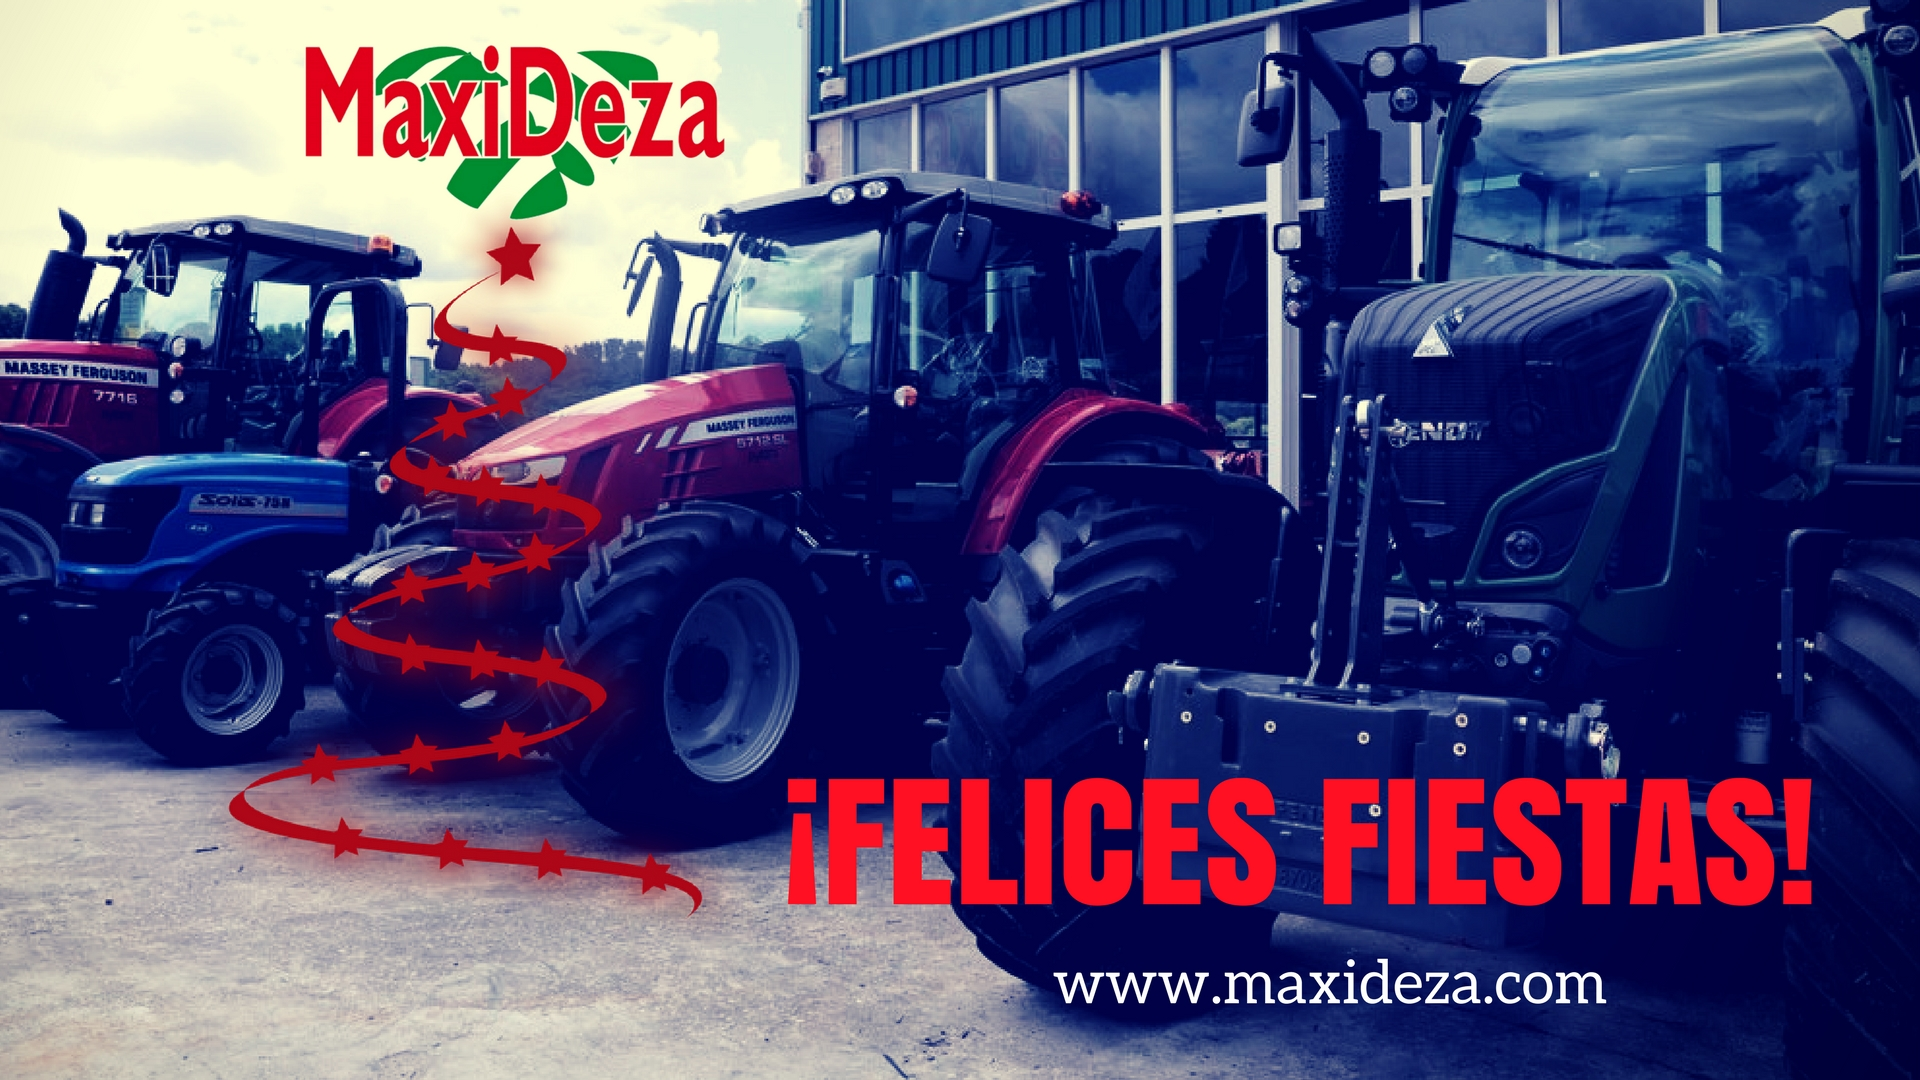 felices-fiestas-maxideza-1920-2